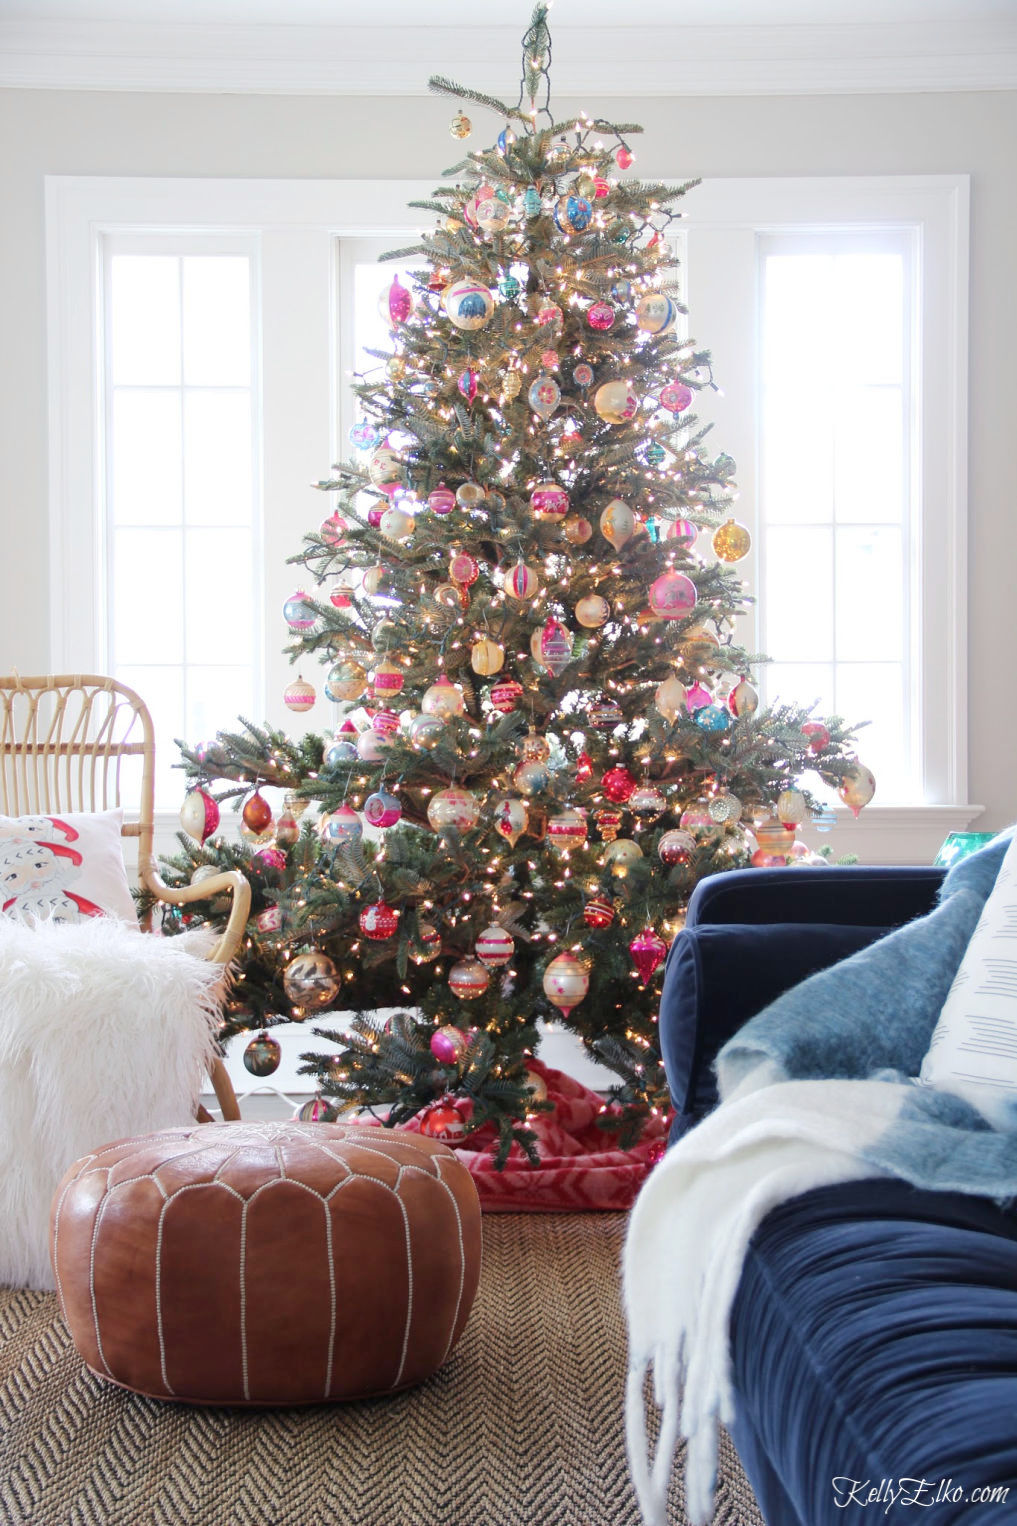 Beautiful Christmas home tour with a tree covered in hundreds of vintage ornaments! kellyelko.com #christmas #christmasdecor #christmasdecorating #christmashome #christmastour #diychristmas #christmasideas #christmasmantel #christmastree #christmasornaments #vintagechristmas #farmhousechristmas #colorfulchristmas #creativechristmas #kellyelko #shinybrites #vintageornaments